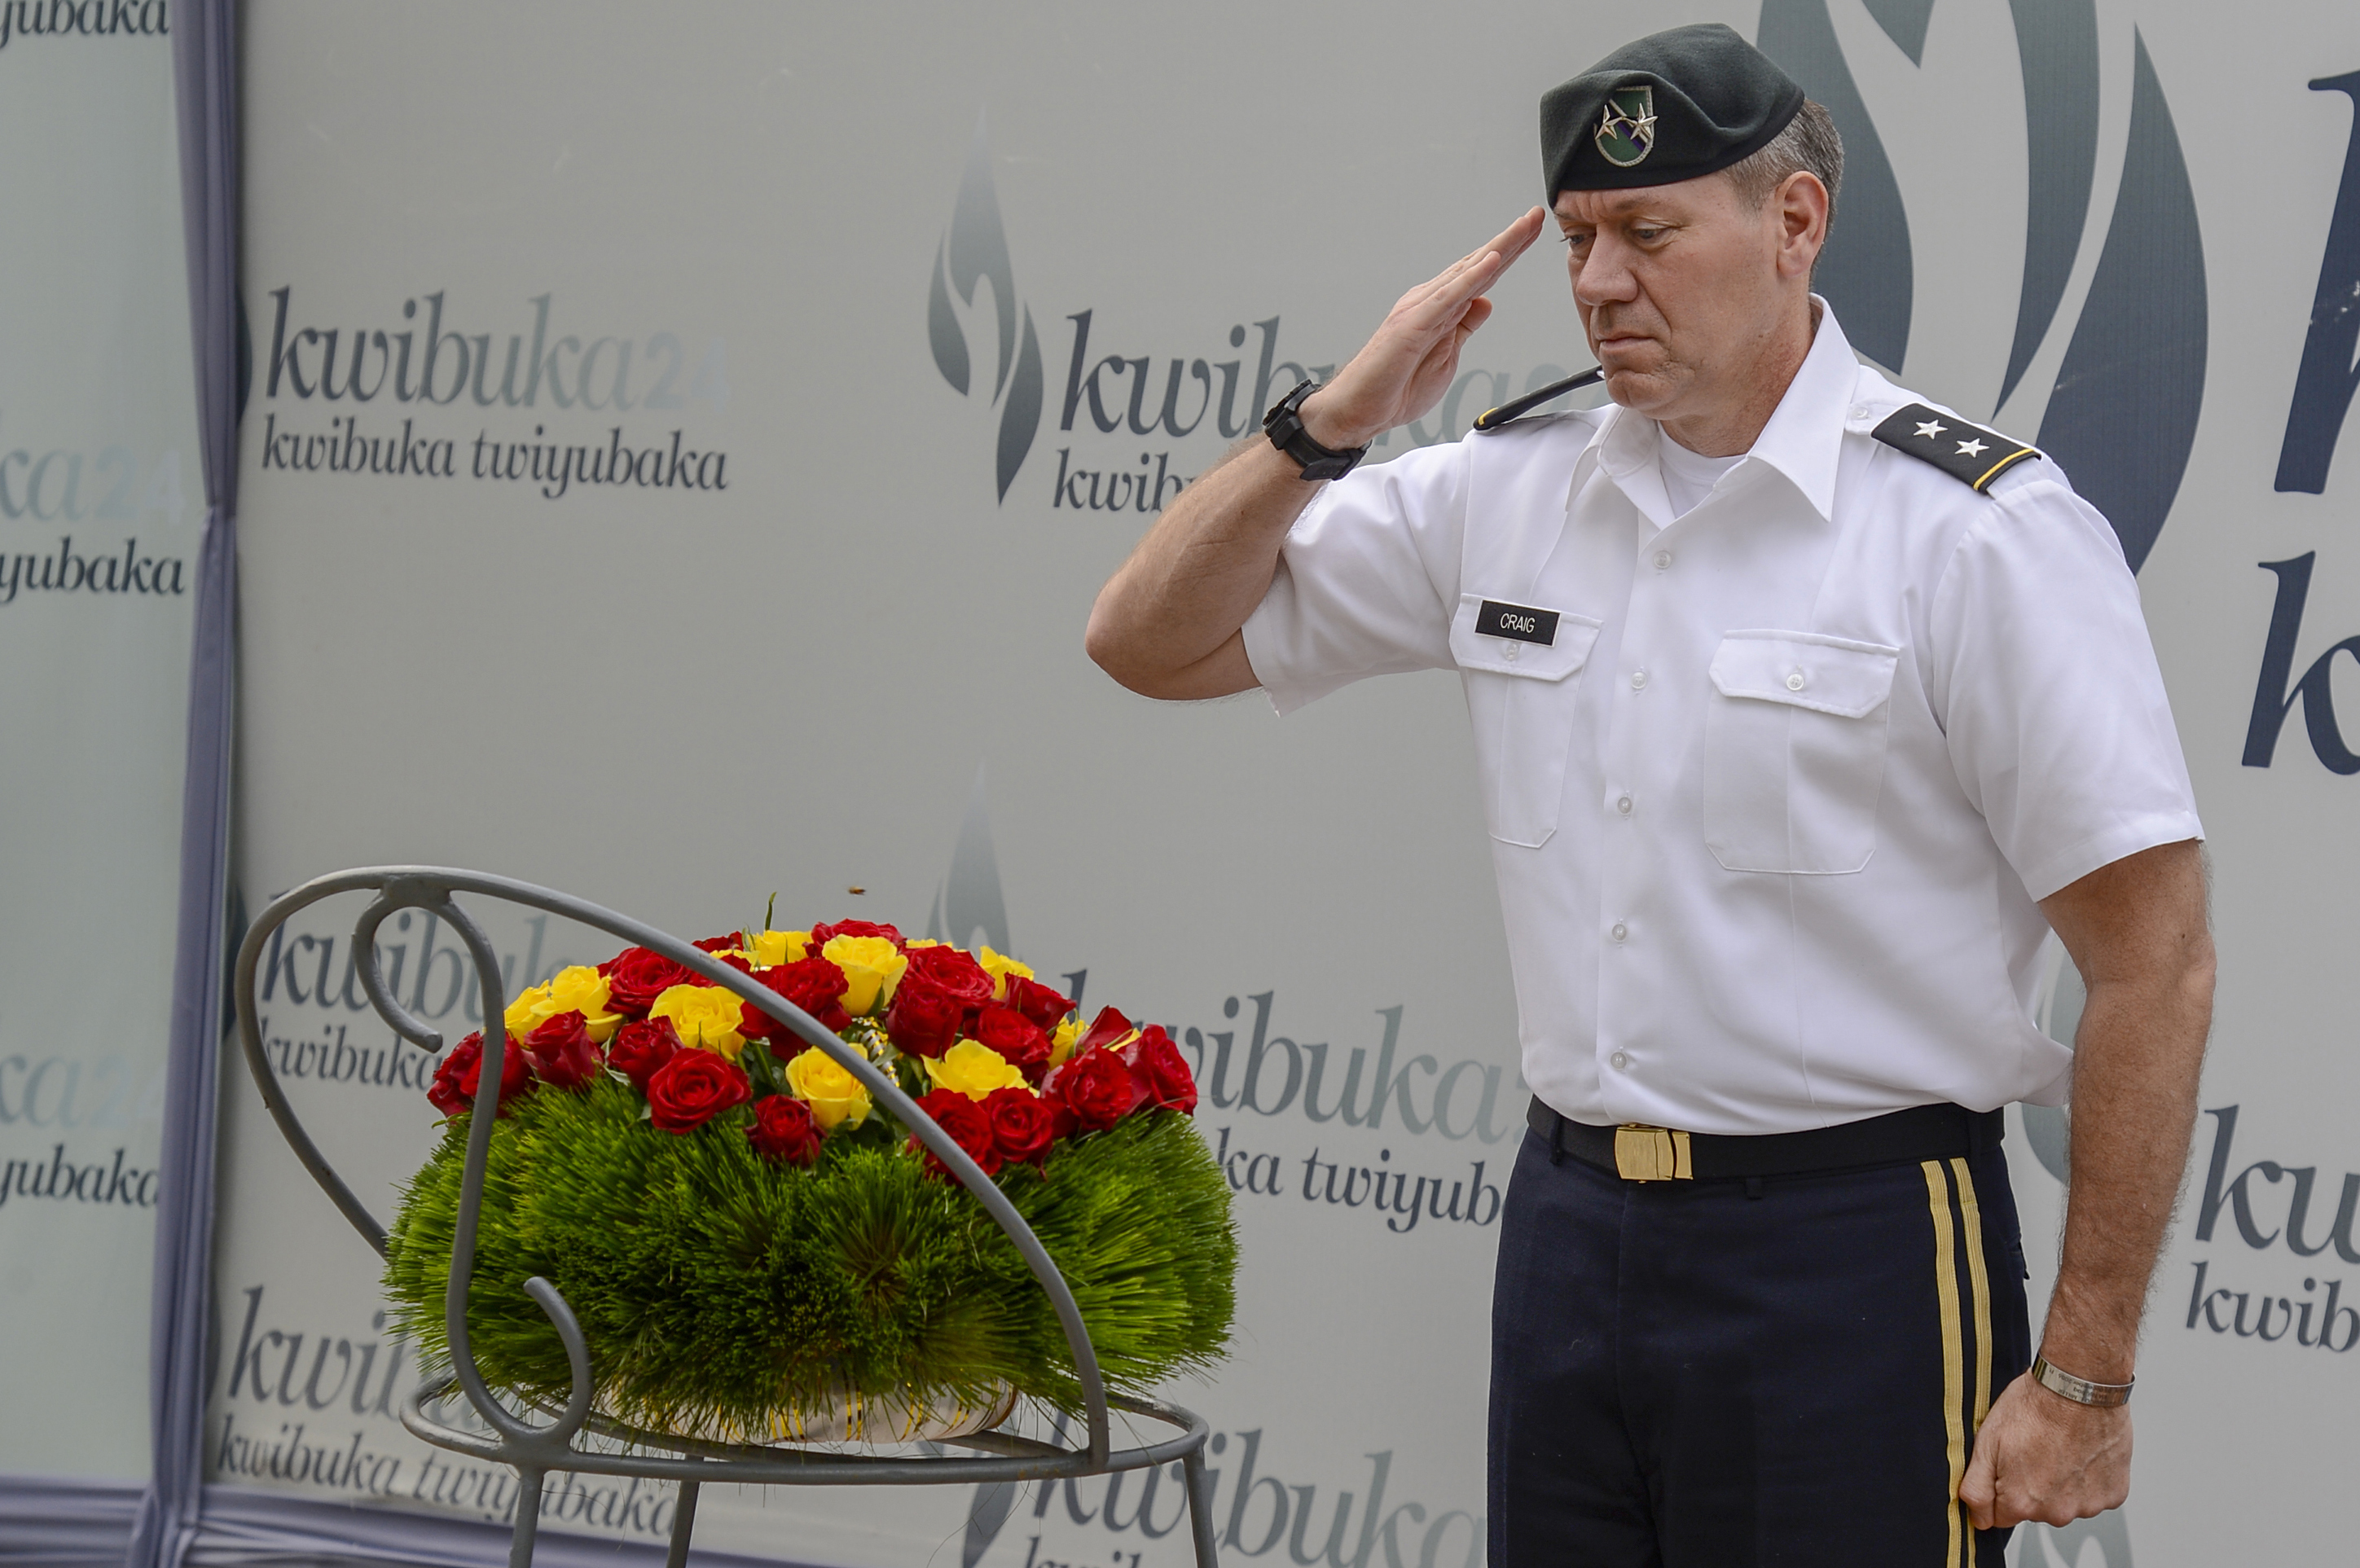 U.S. Army Maj. Gen. James Craig, commanding general of Combined Joint Task Force- Horn of Africa, pays his respects after laying a wreath at a tomb of 250,000 Rwandans killed during the Rwandan genocide at the Kigali Genocide Memorial in Kigali, Rwanda, Aug. 29, 2018. Craig visited Rwanda to conduct key leader engagements, meeting with both U.S. and Rwandan top leaders. (U.S. Navy Photo by Mass Communication Specialist 2nd Class Timothy M. Ahearn)